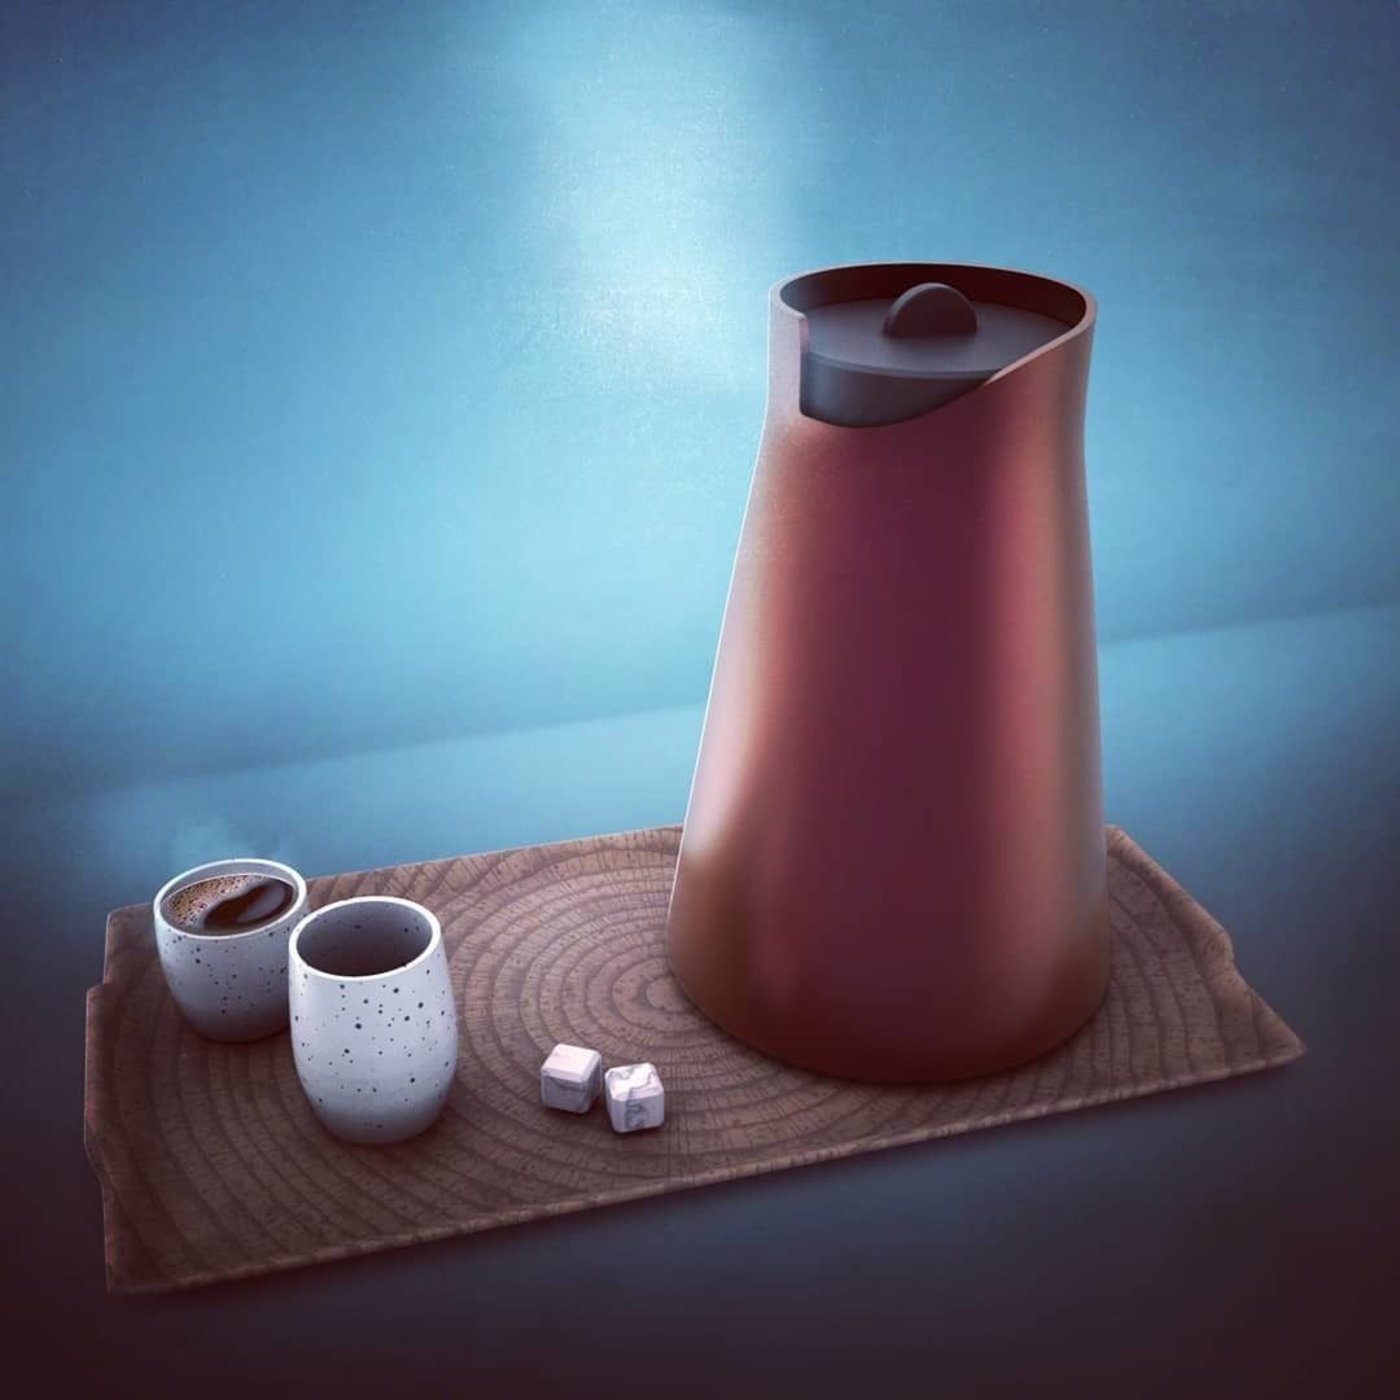 Product Design Modeling and Rendering   Industrial Design